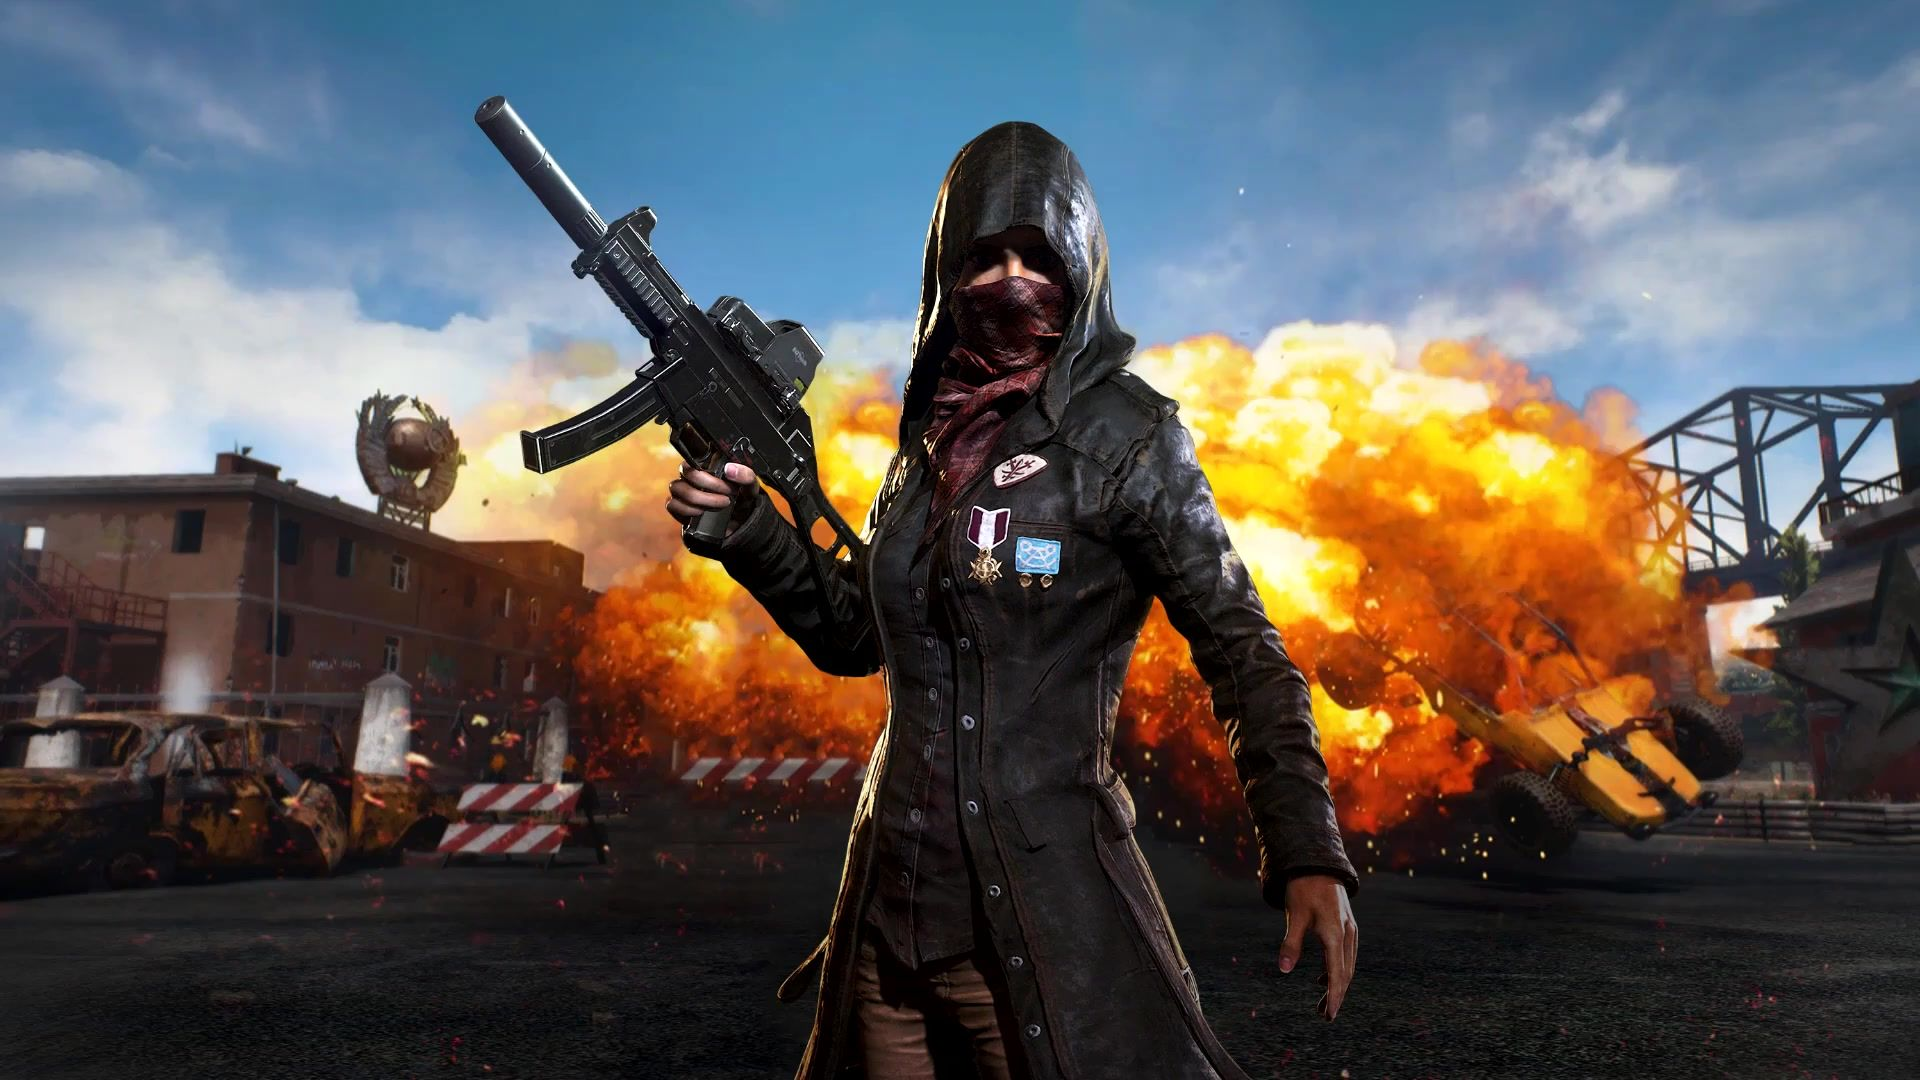 Download 63 Koleksi Wallpaper Pubg Mobile Anime HD Paling Keren